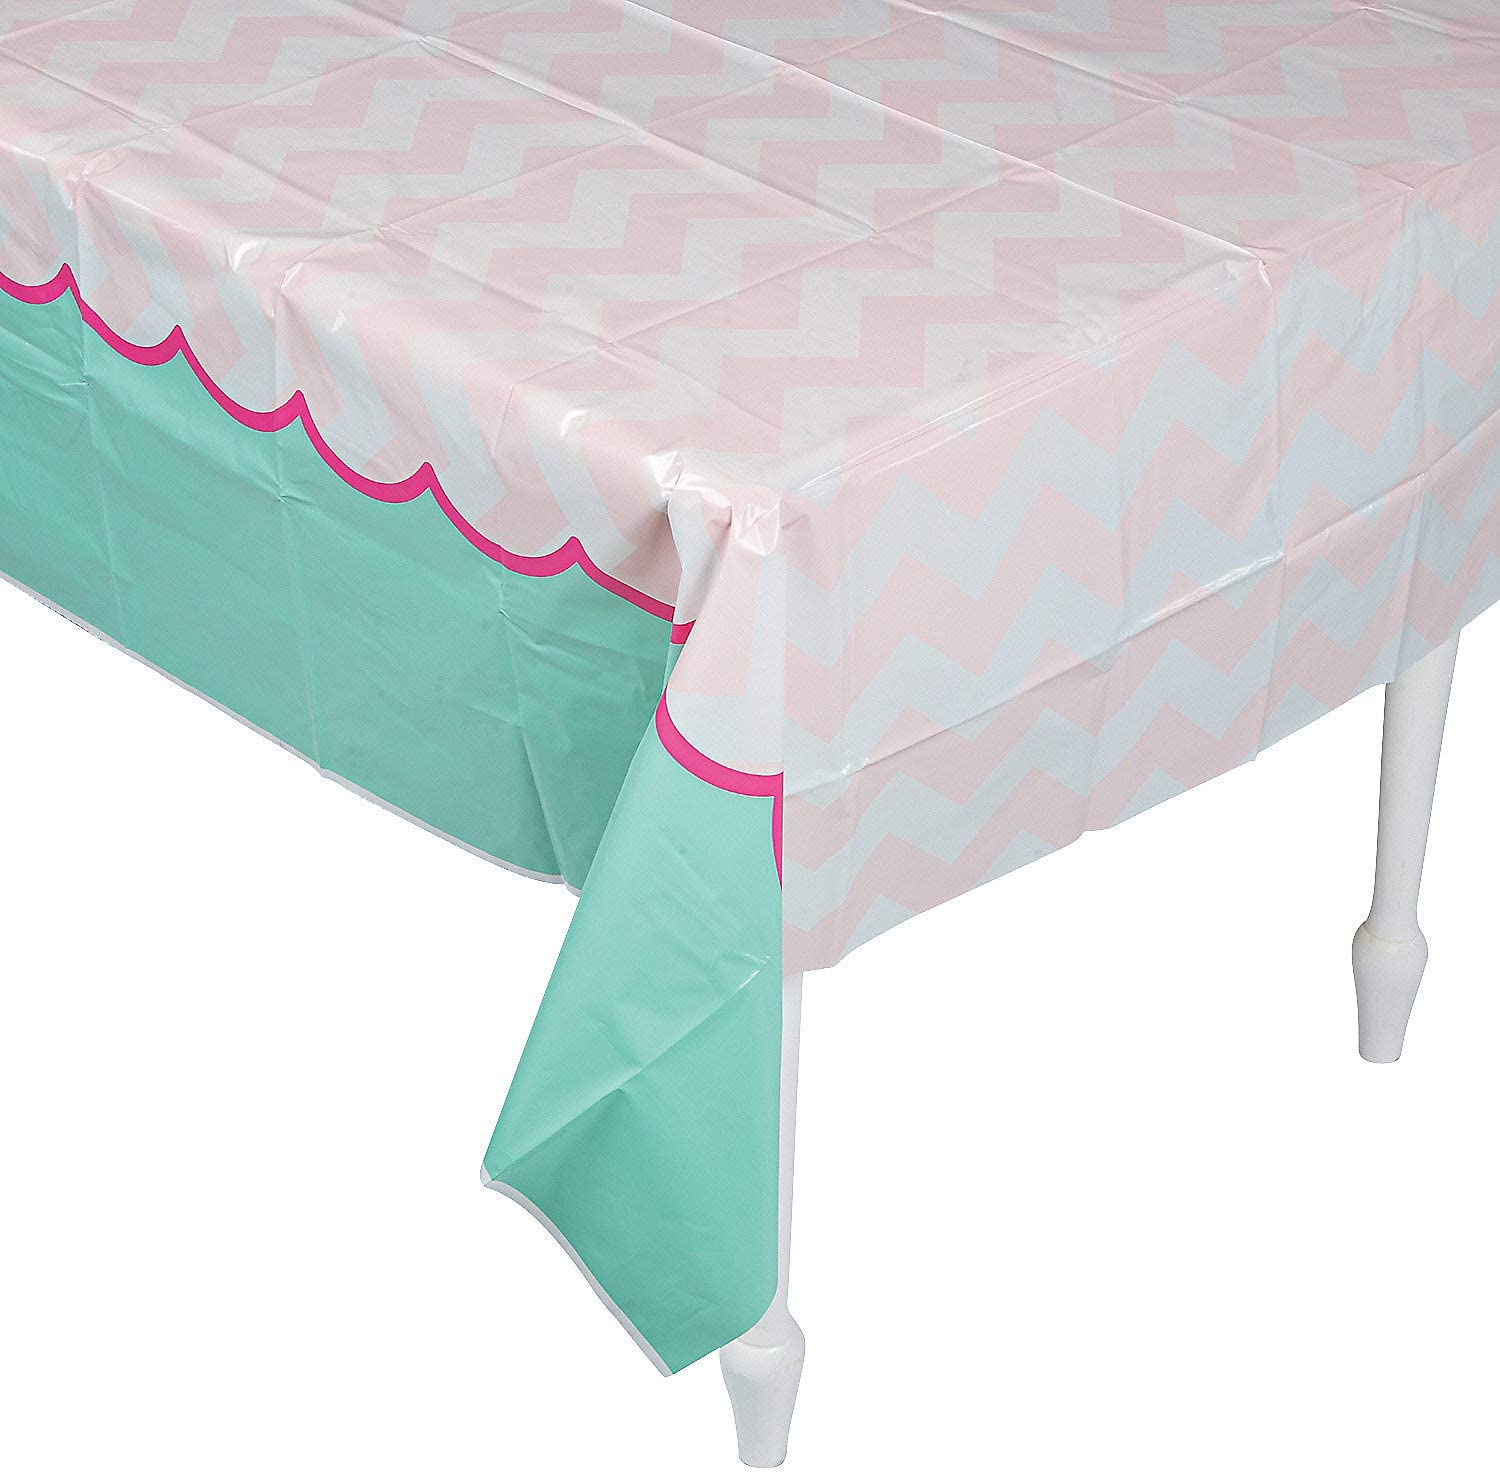 1ST PINK ELEPHANT TABLECOVER - Party Supplies - 1 Piece